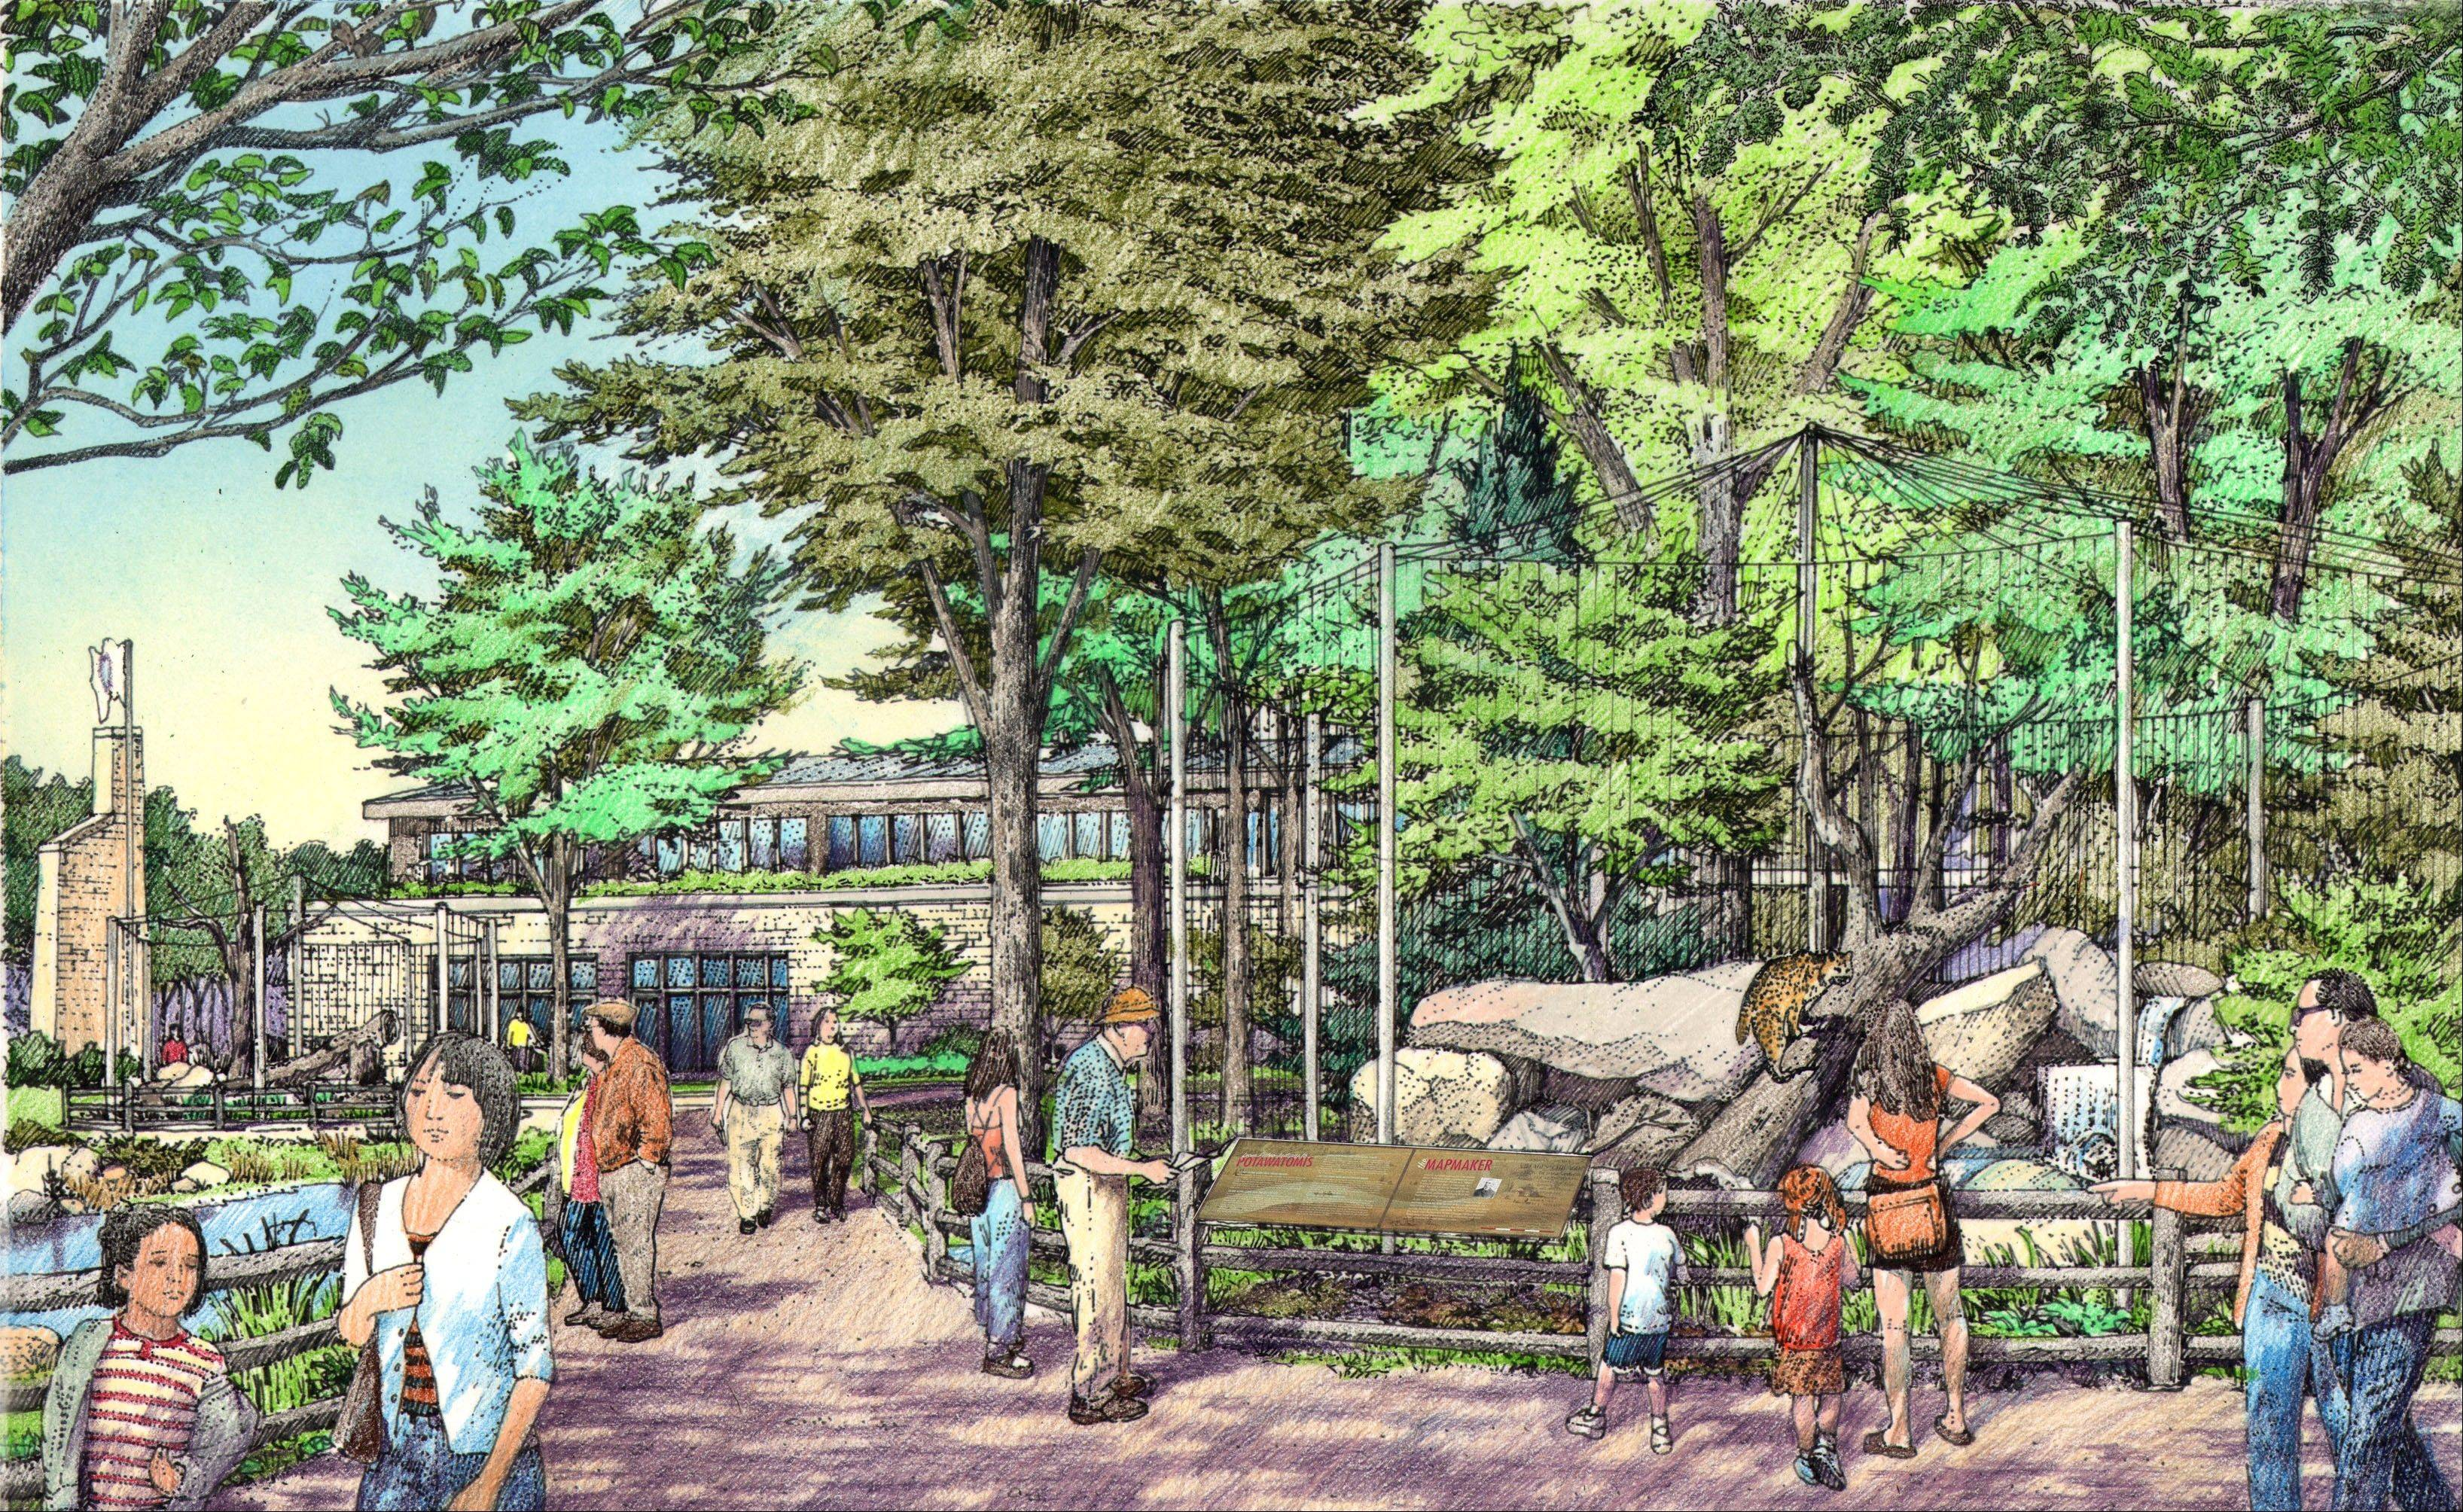 A new outdoor exhibit area is planned for the third phase of renovations at the Willowbrook Wildlife Center in Glen Ellyn.